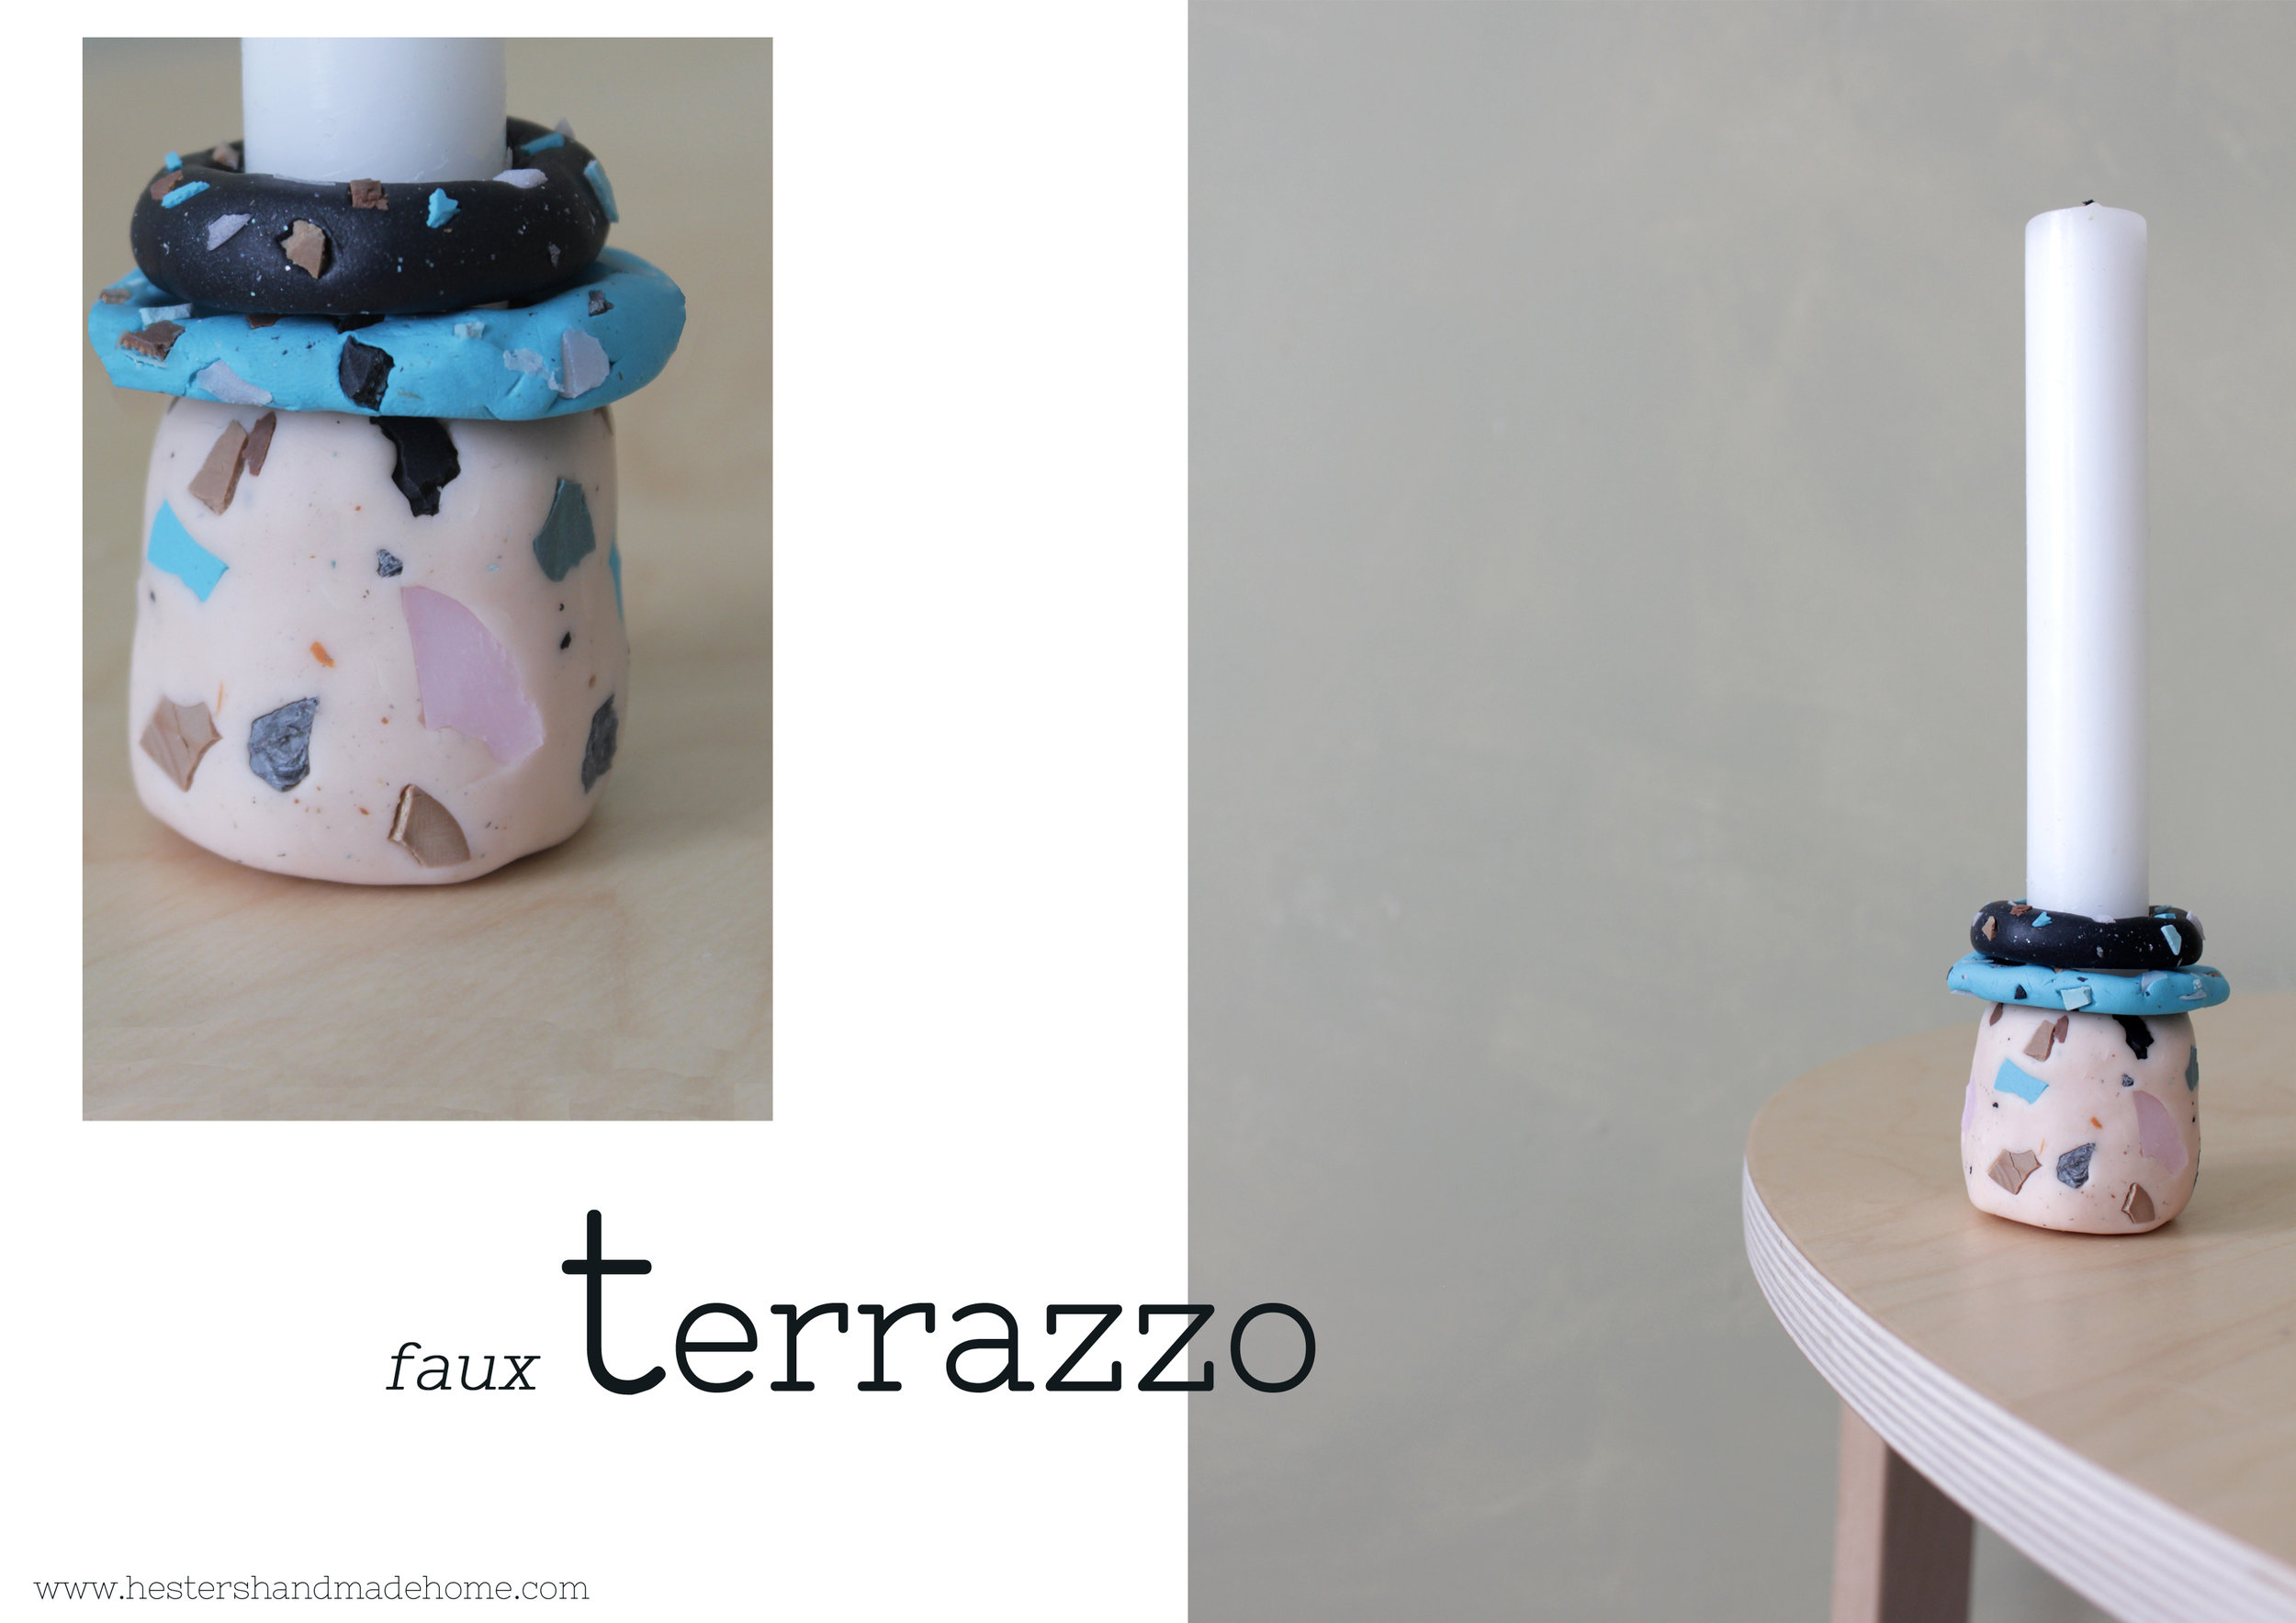 Faux terrazzo candle holder by www.hestershandamdehome.com